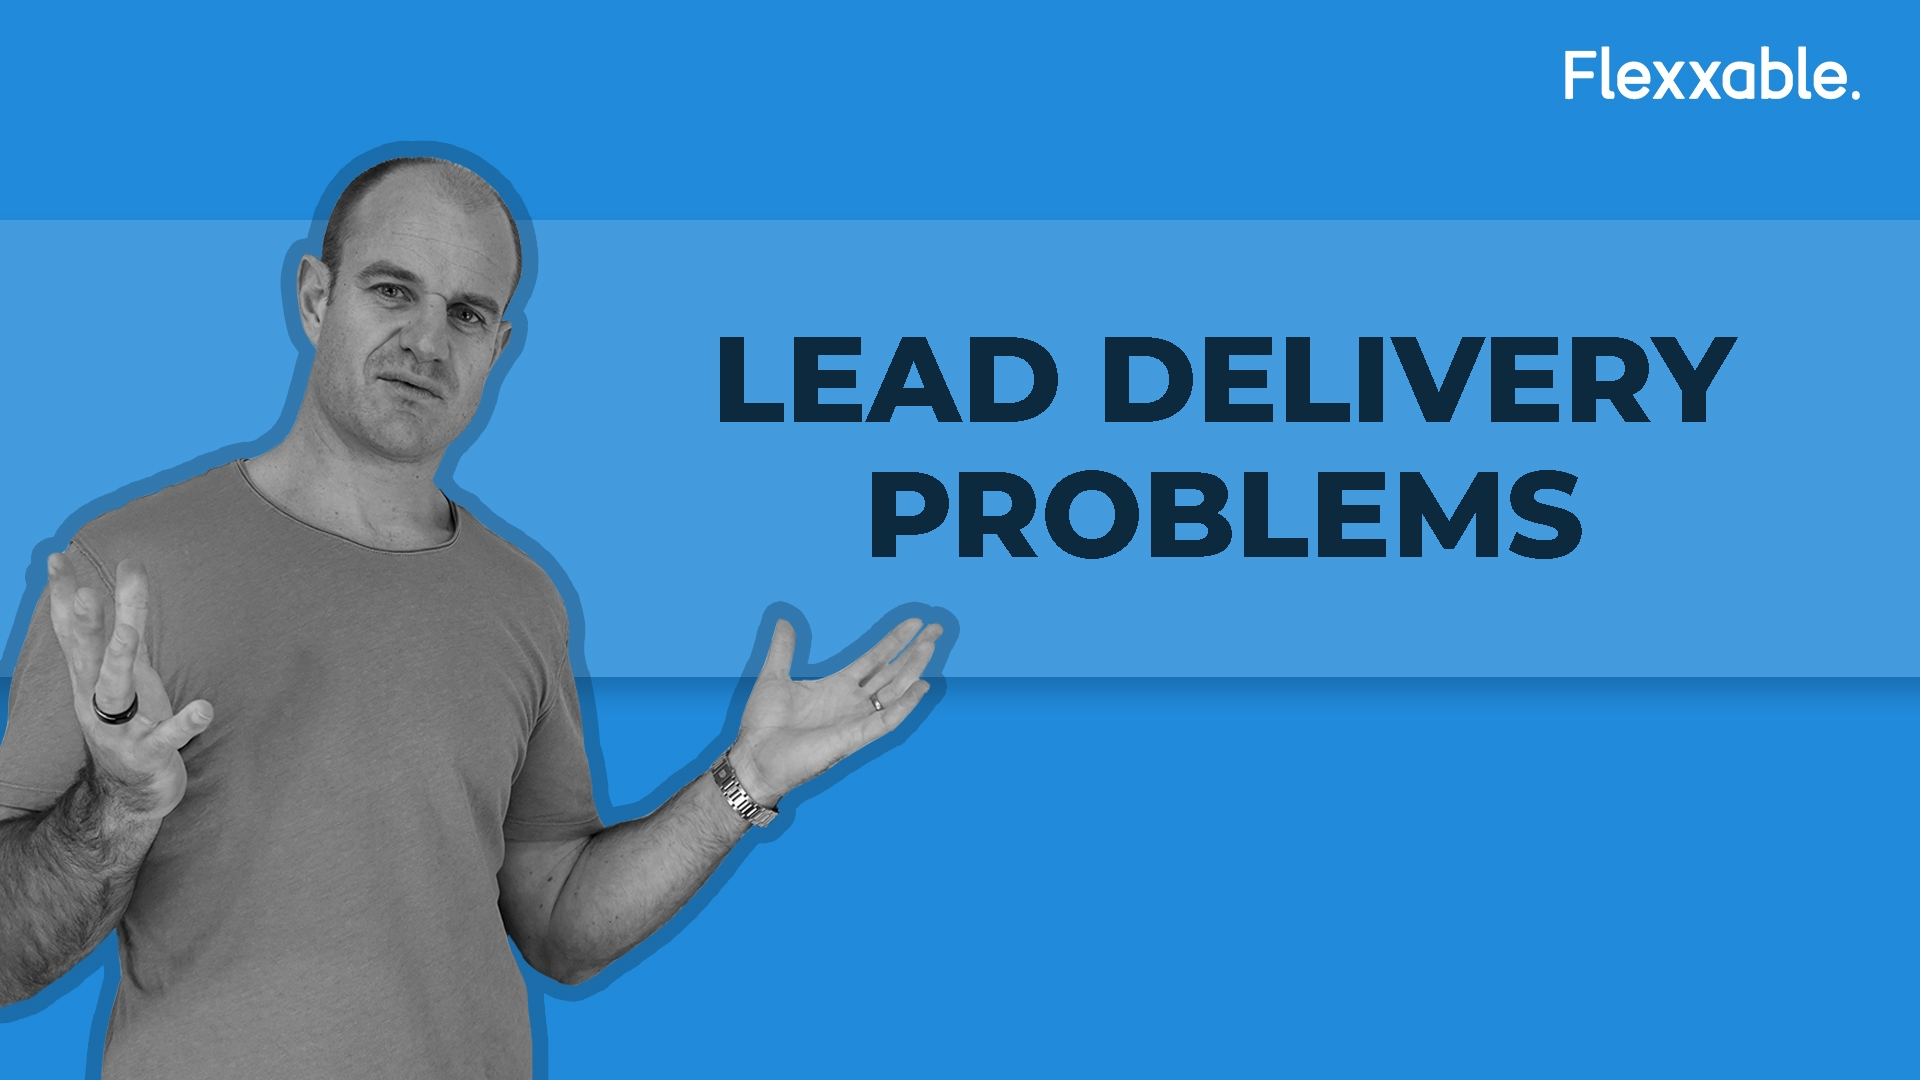 Lead Delivery Problems